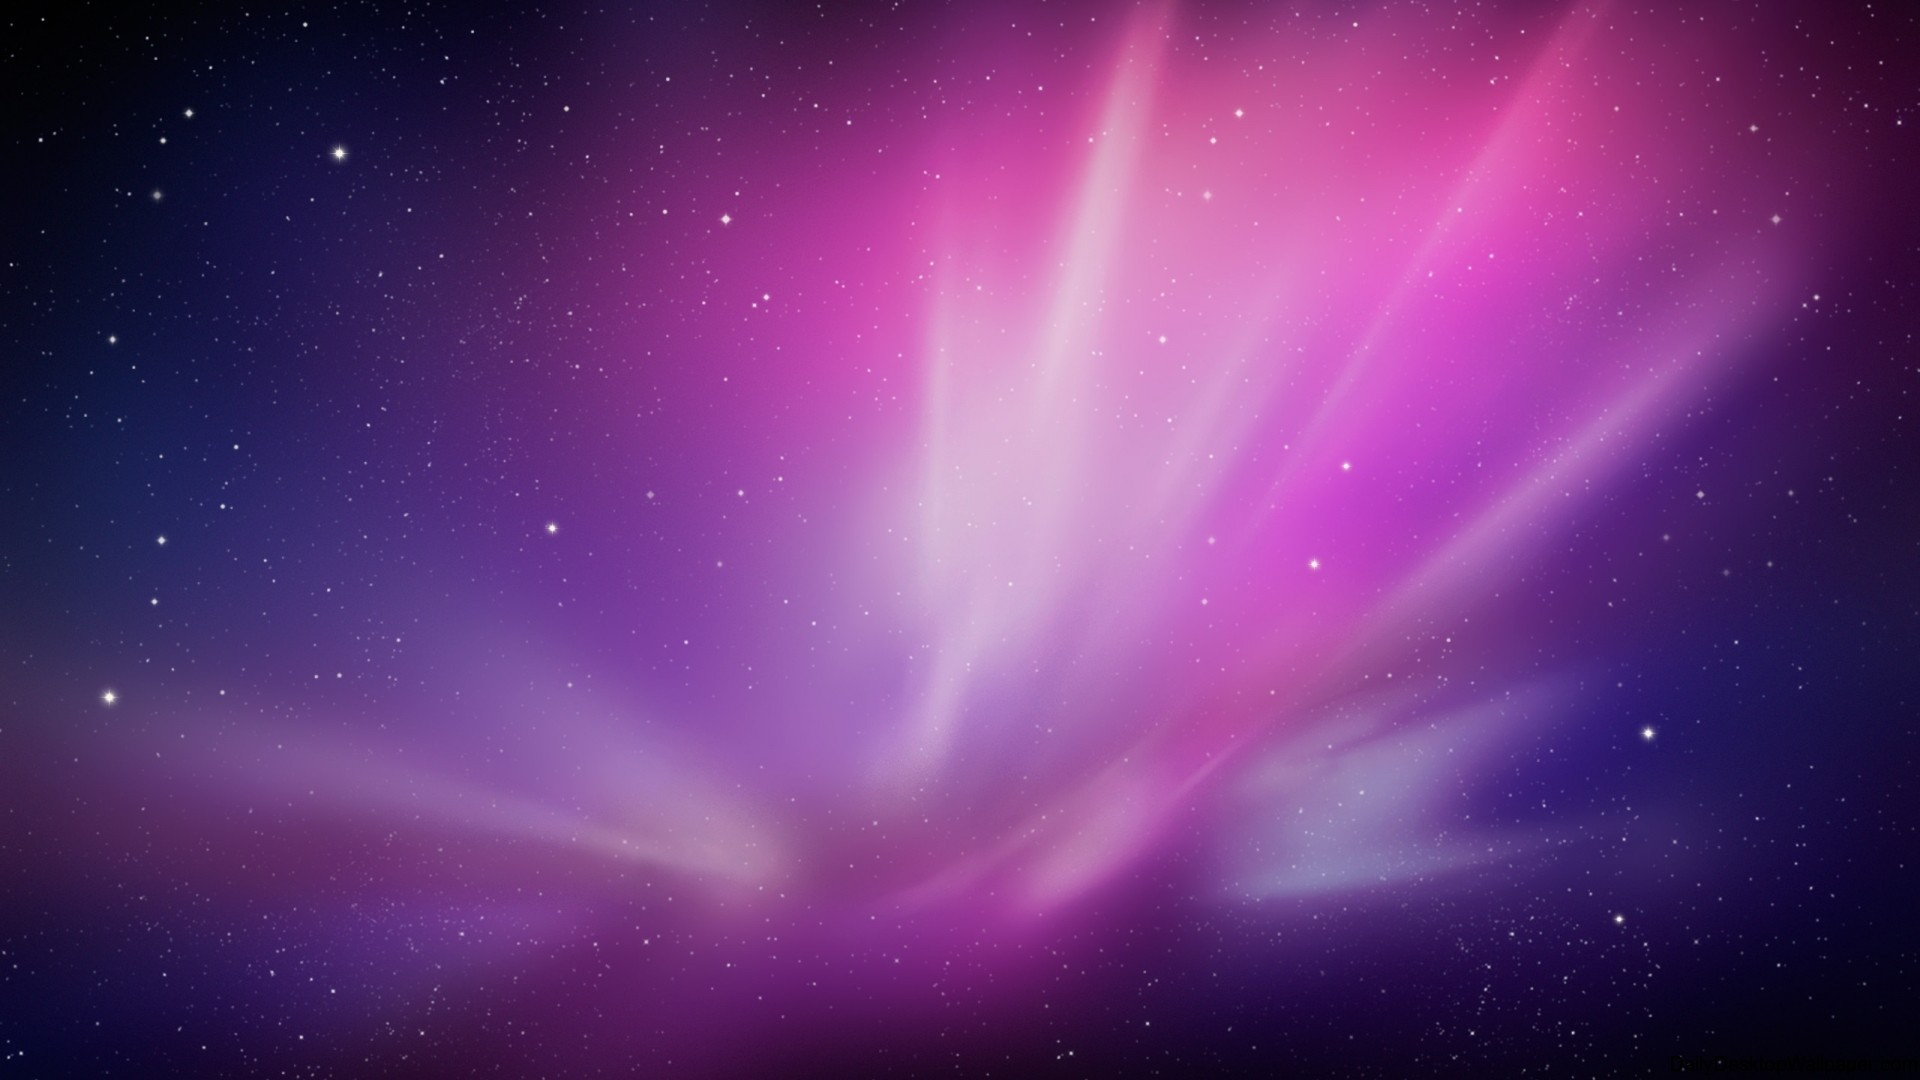 Hd Mac Os X Backgrounds By Billion Photos Pages